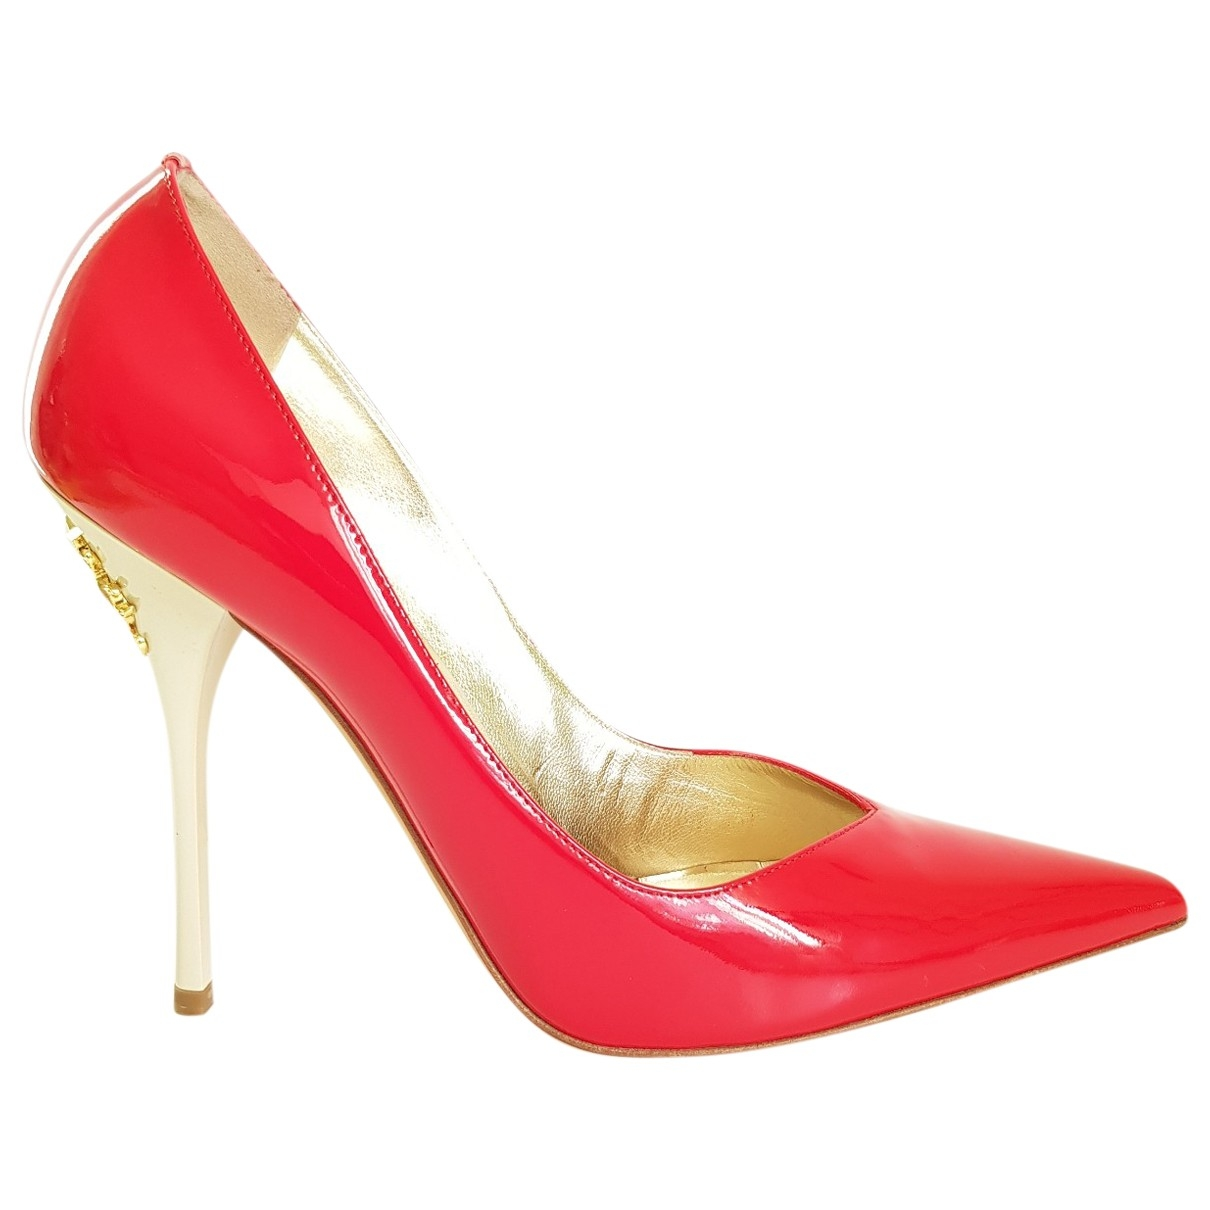 Roberto Cavalli \N Red Patent leather Heels for Women 40.5 EU